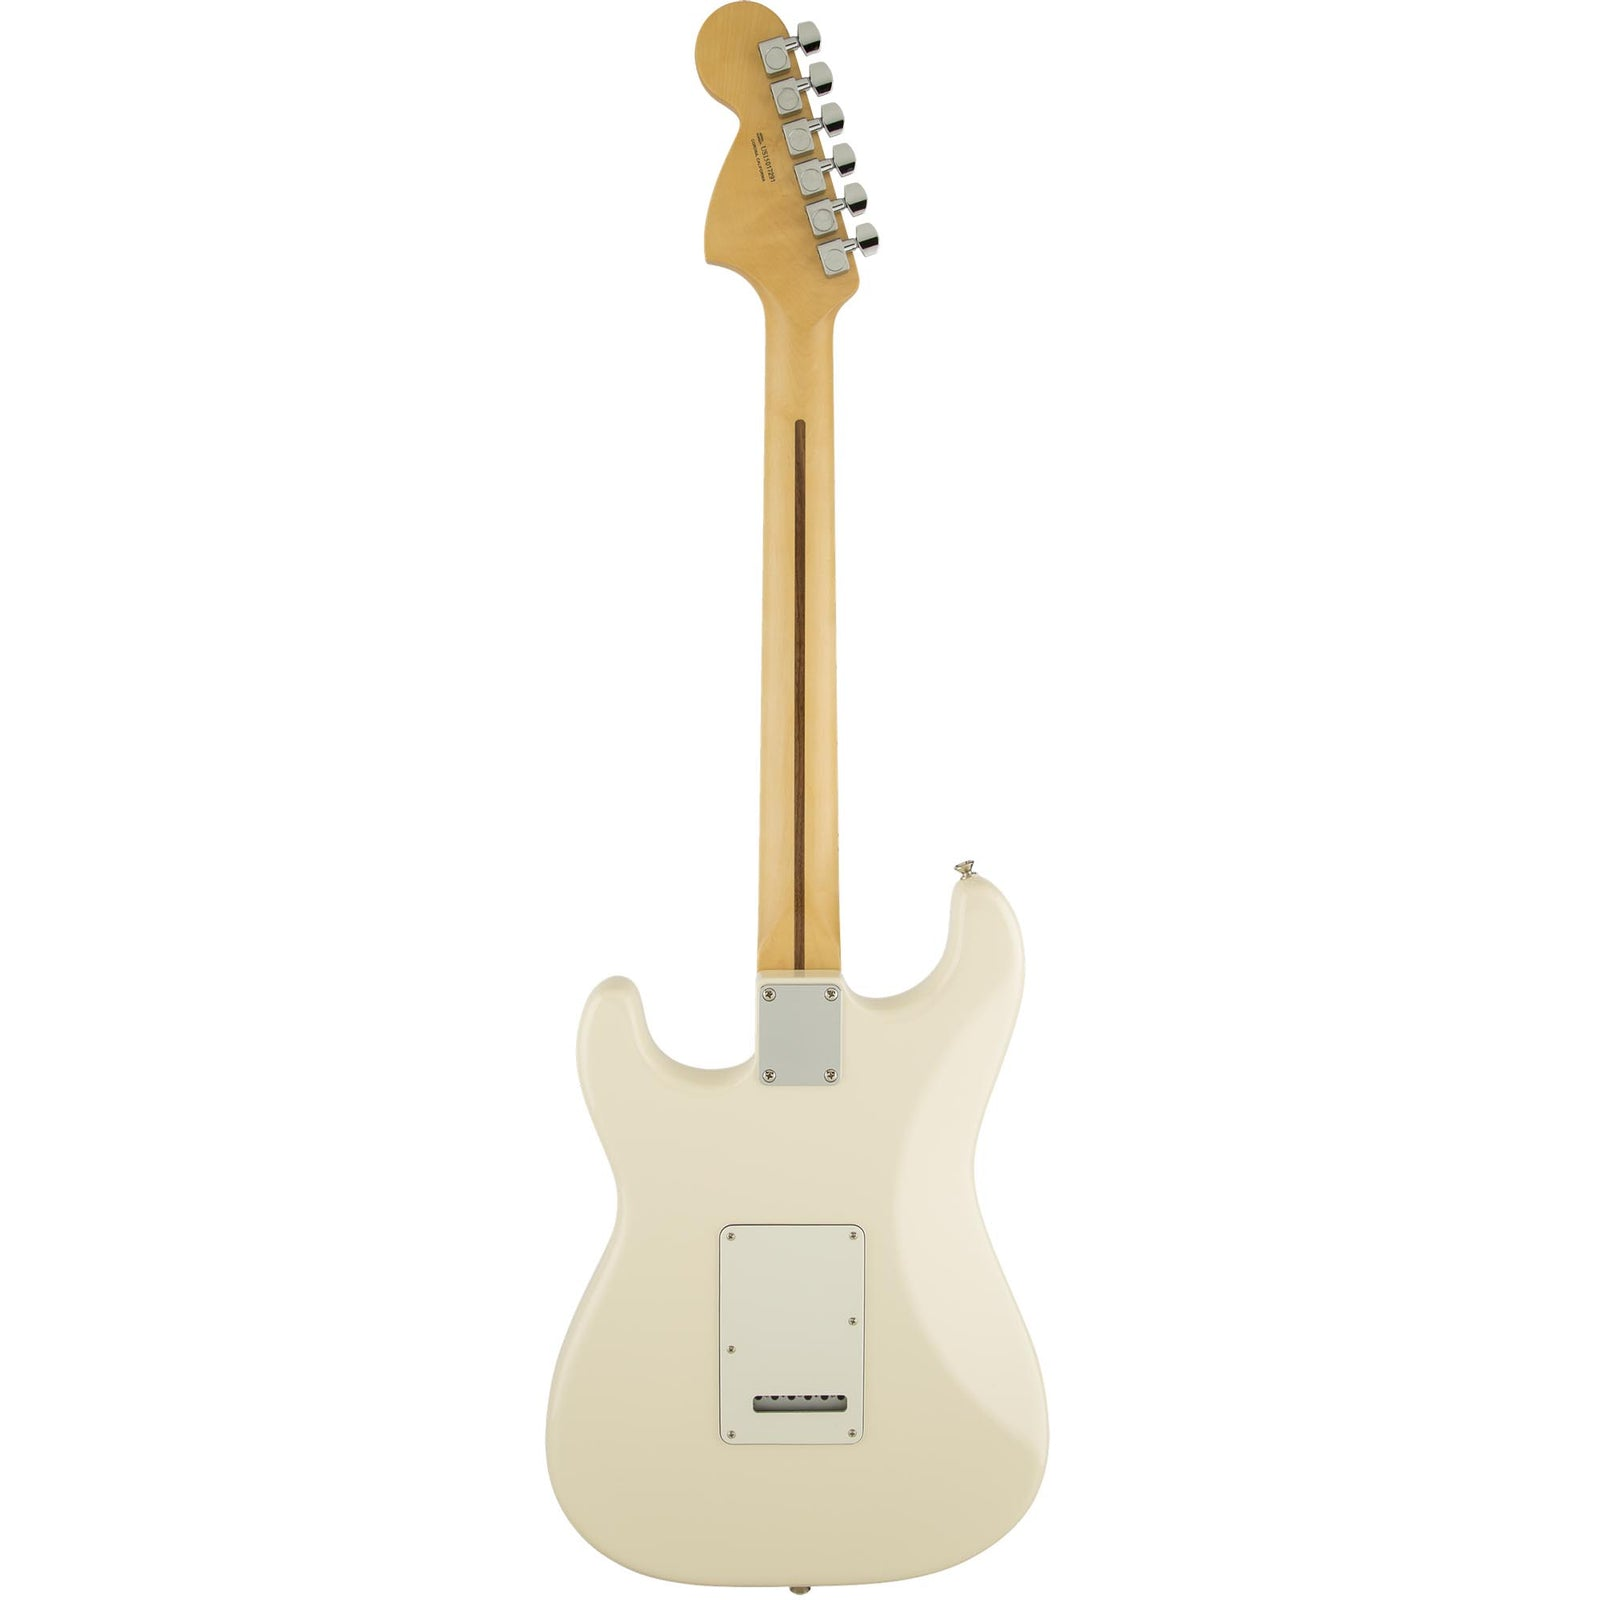 Fender American Special Stratocaster - Maple Fingerboard - Olympic White